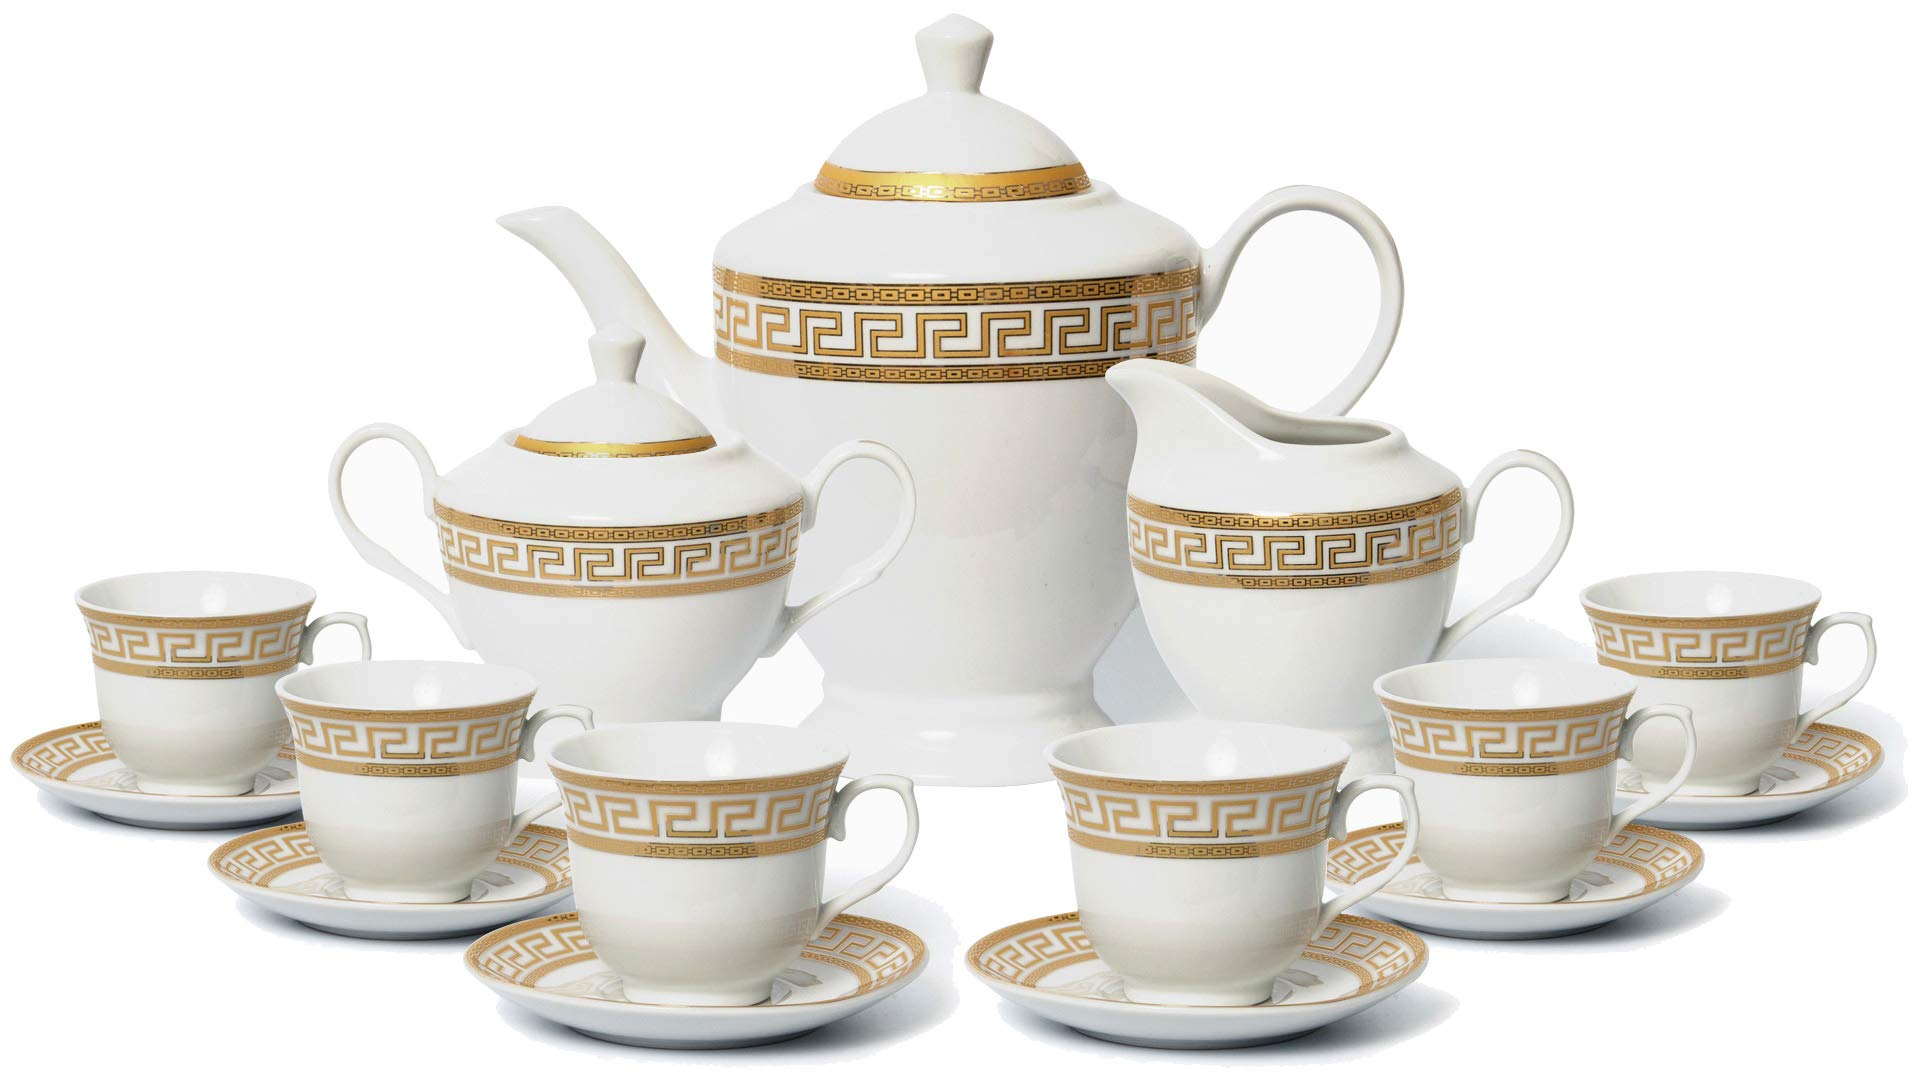 Euro Porcelain 17-Pc. Vintage 'Gold Greek Key' Tea Cup Coffee Set with 24K Gold-Plated Ornament, Complete Service for 6